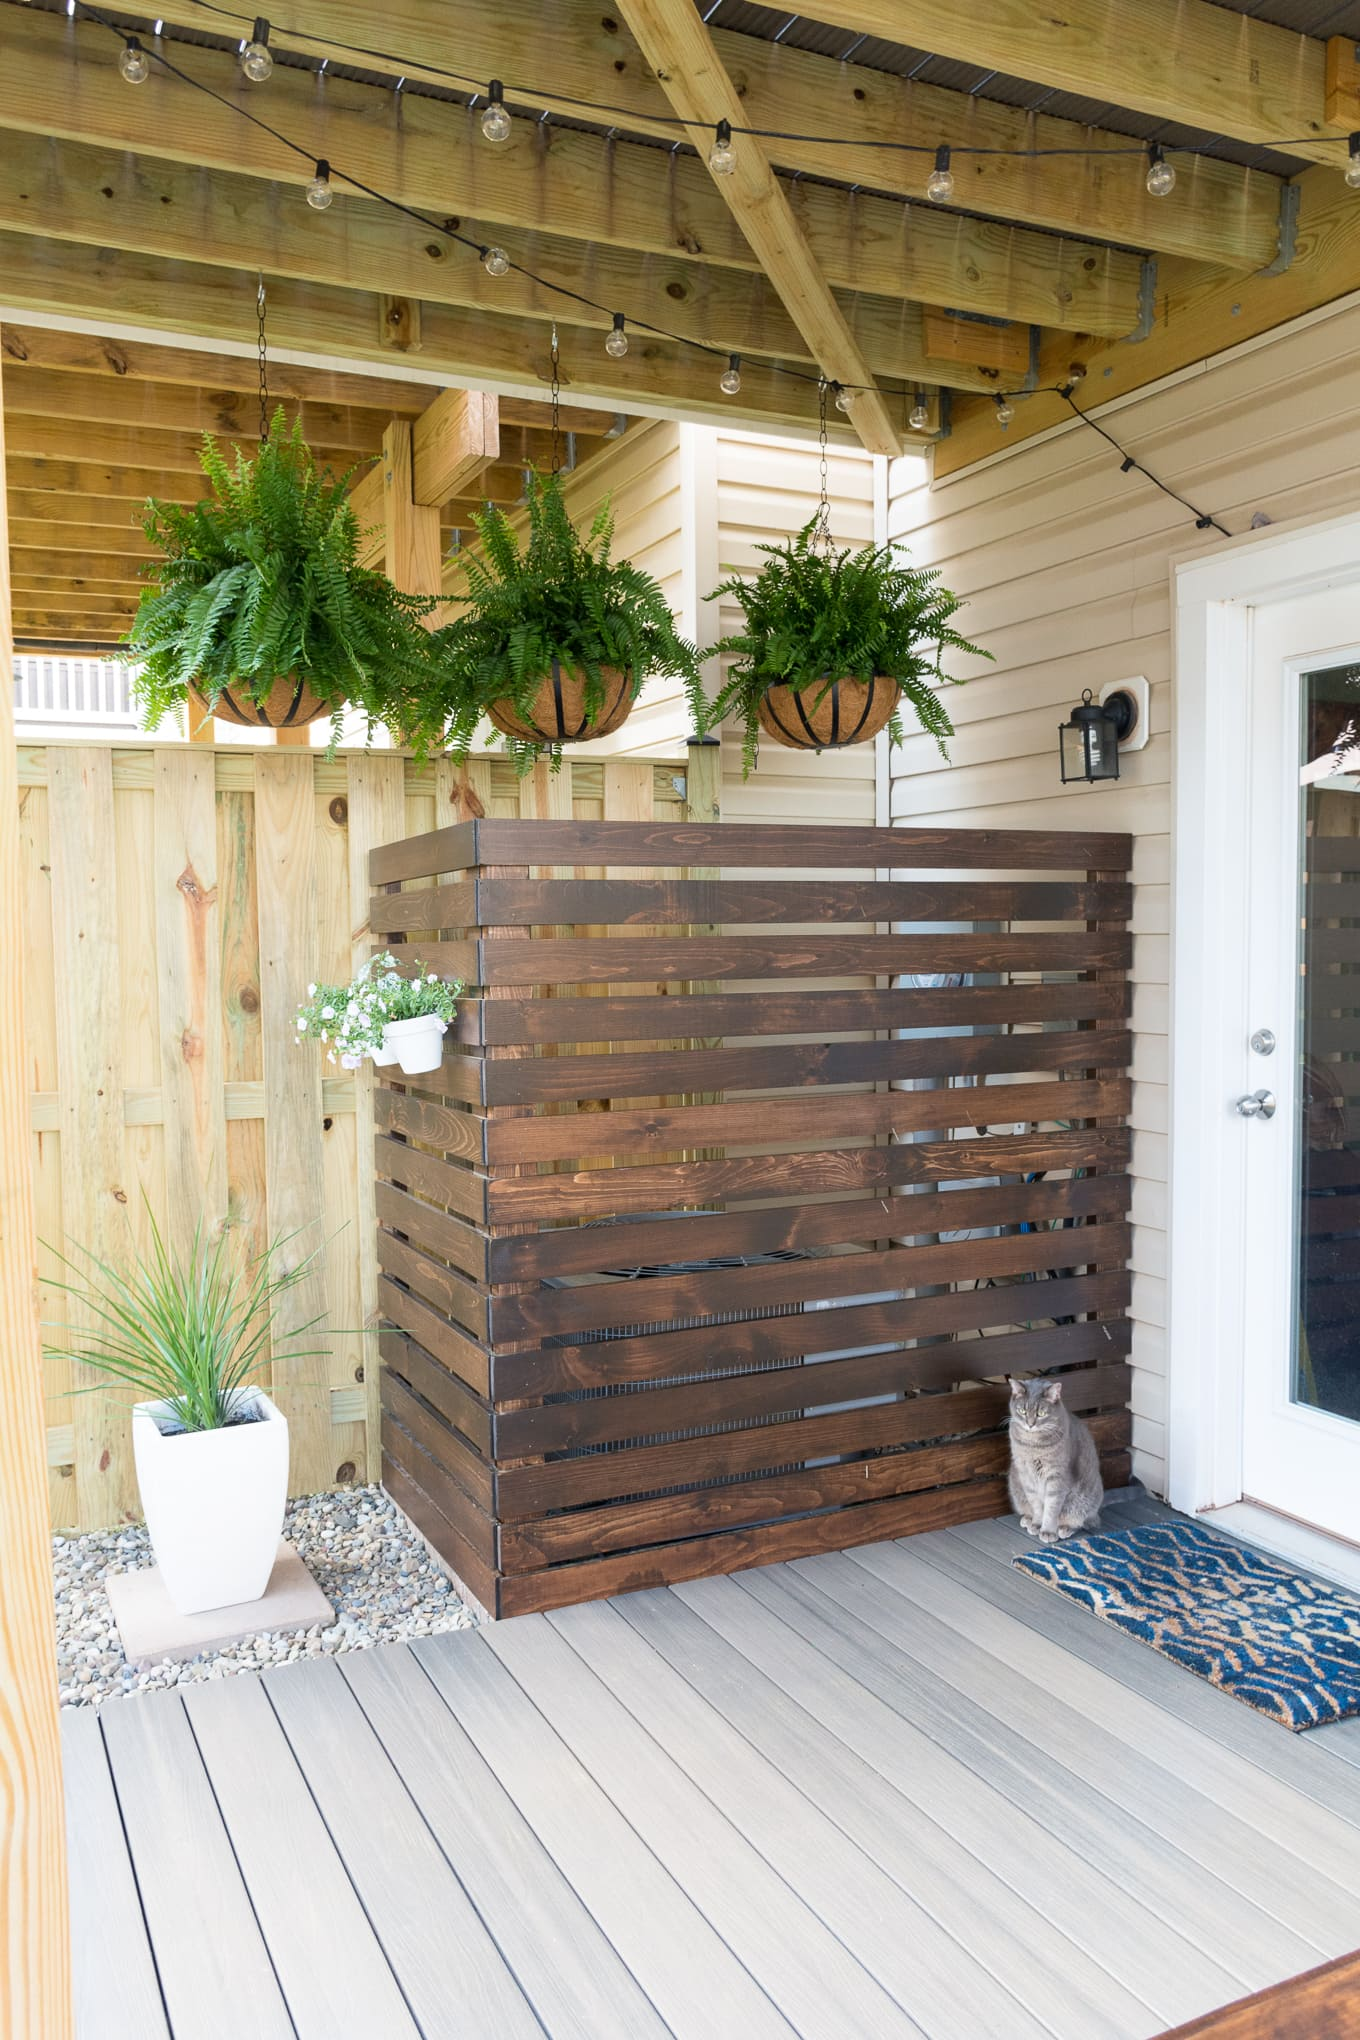 Modern design ideas for a small backyard // Hanging ferns // DIY AC screen // DIY HVAC unit screen // My Tiny Backyard // by Brittany Goldwyn